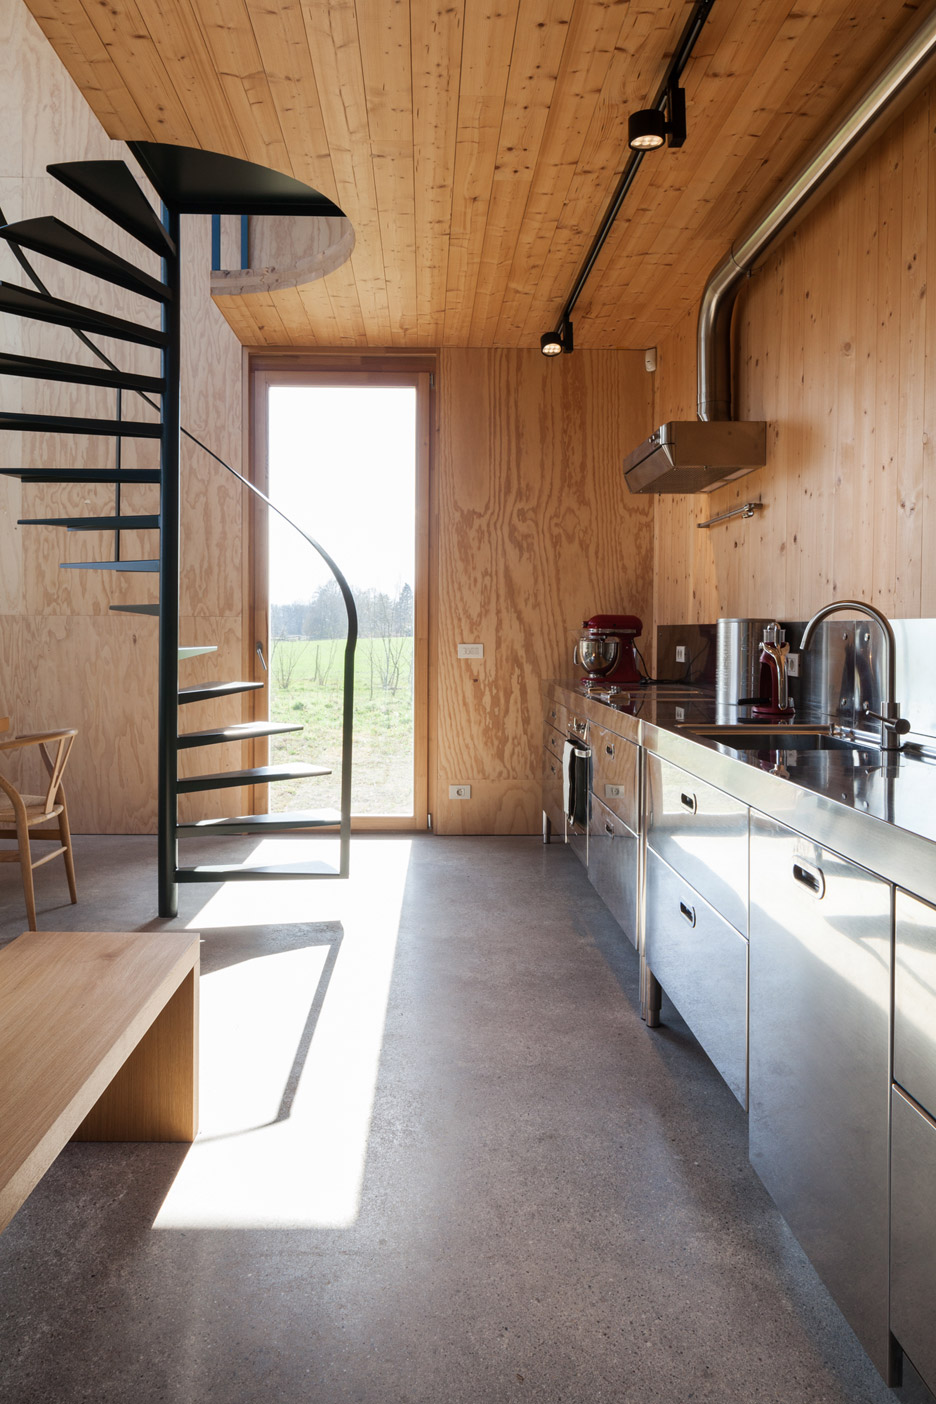 weekend-house-wachtebeke-gafpa_dezeen_936_17